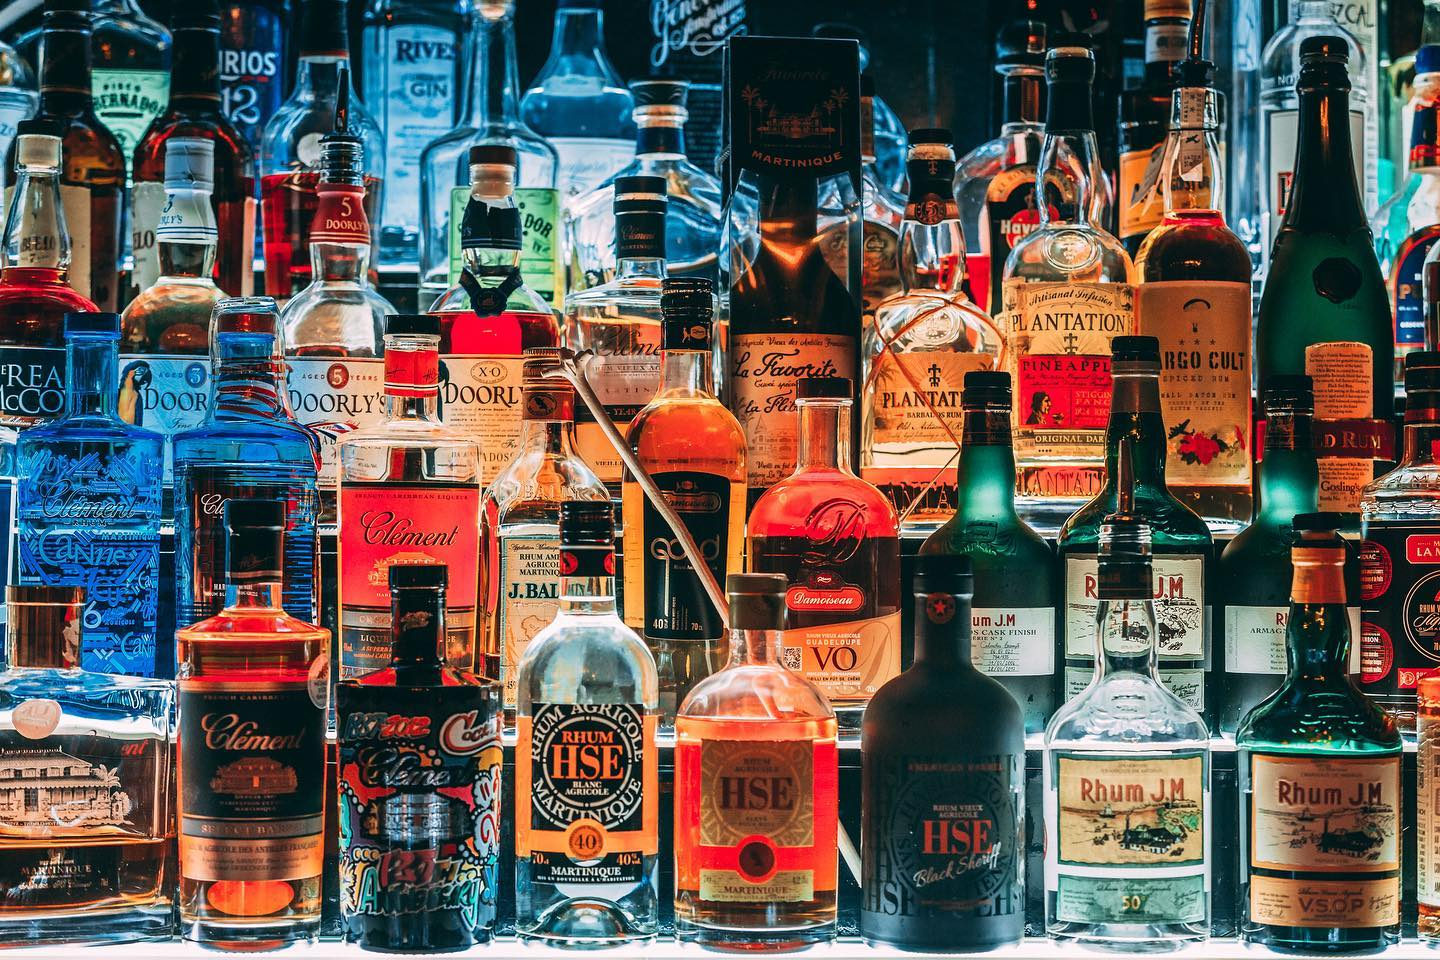 Rhum Agricole and other rums